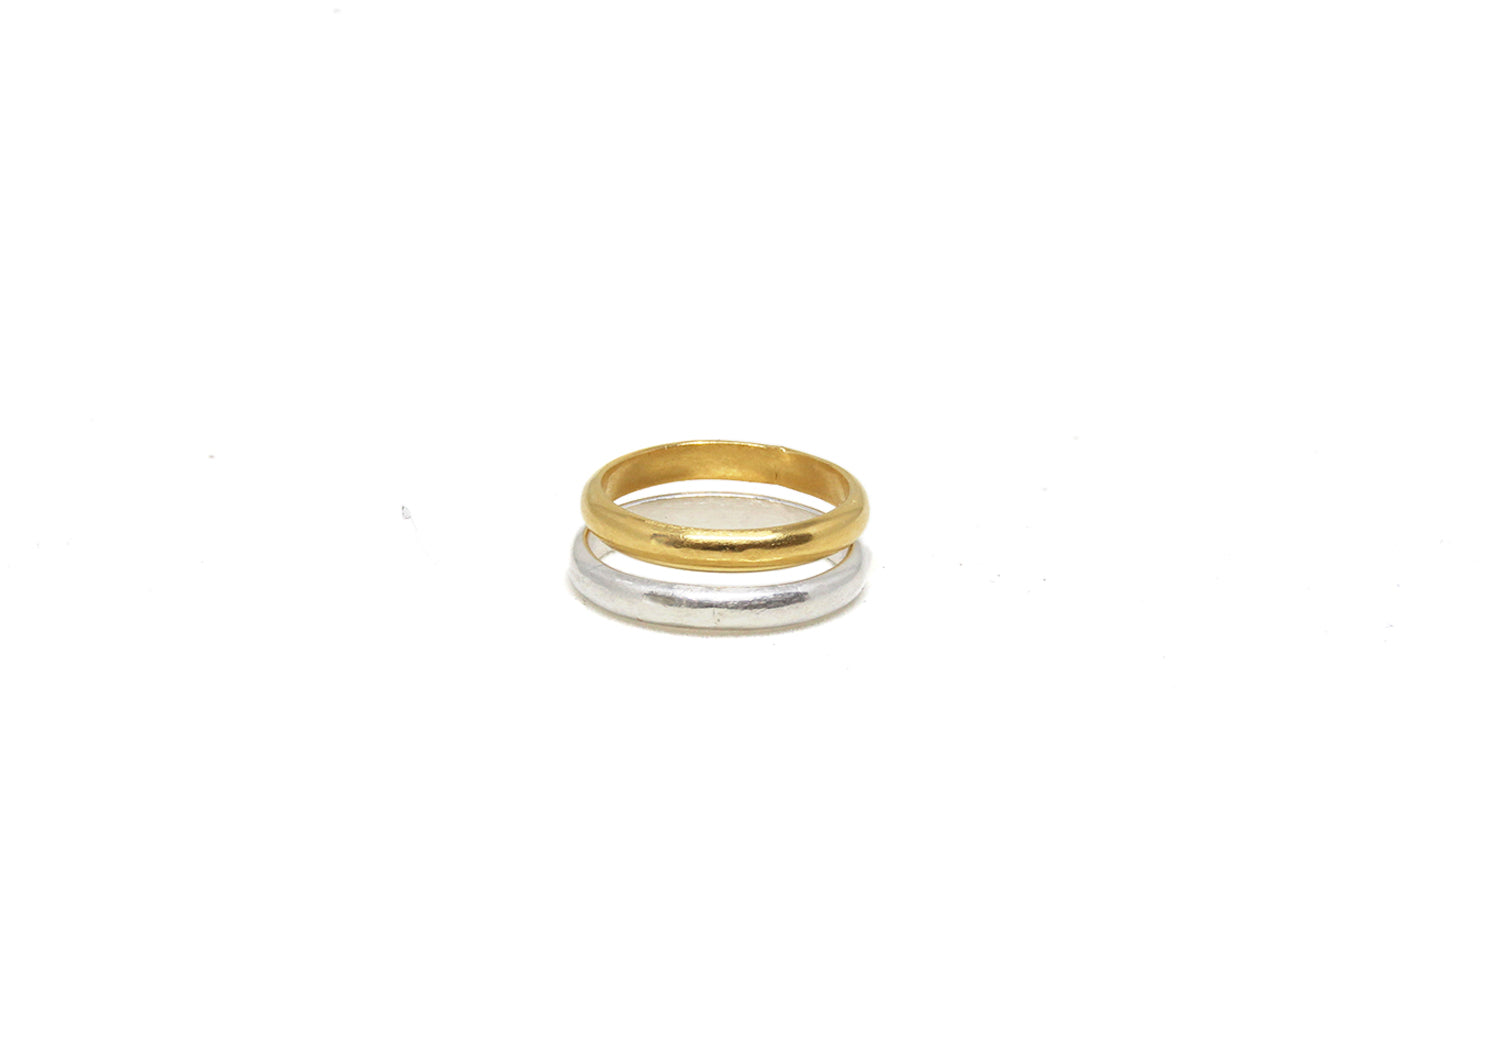 llayers jewelry wedding Minimalist stacking vermeil ring with a beaded wire bague fine fiançaille à empiler en vermeil or argent